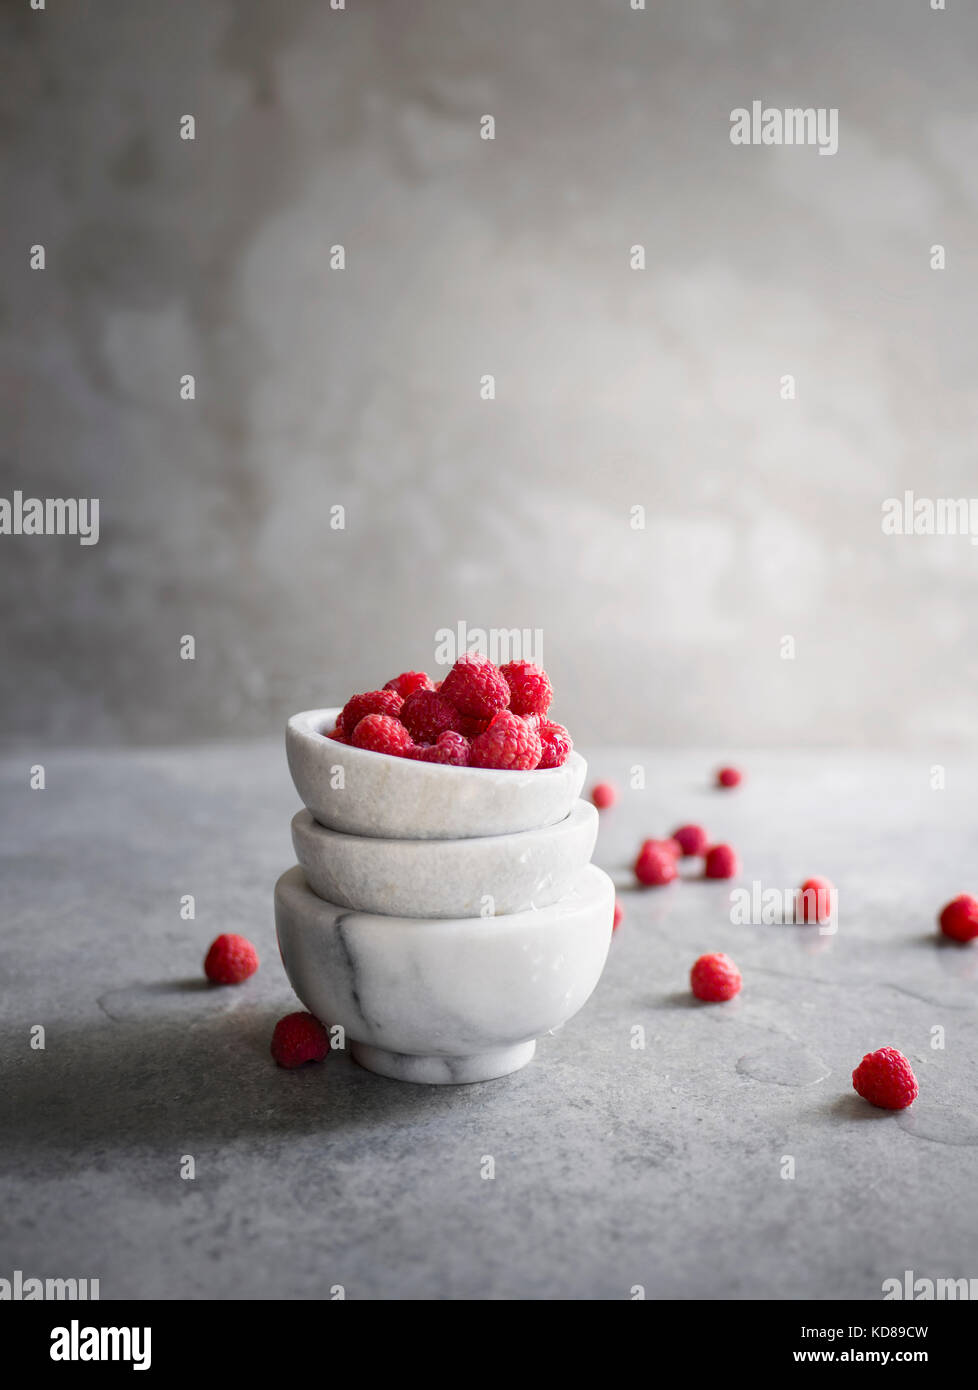 Fresh raspberries in stacked marble bowls on textured metal surface. Light and airy. - Stock Image